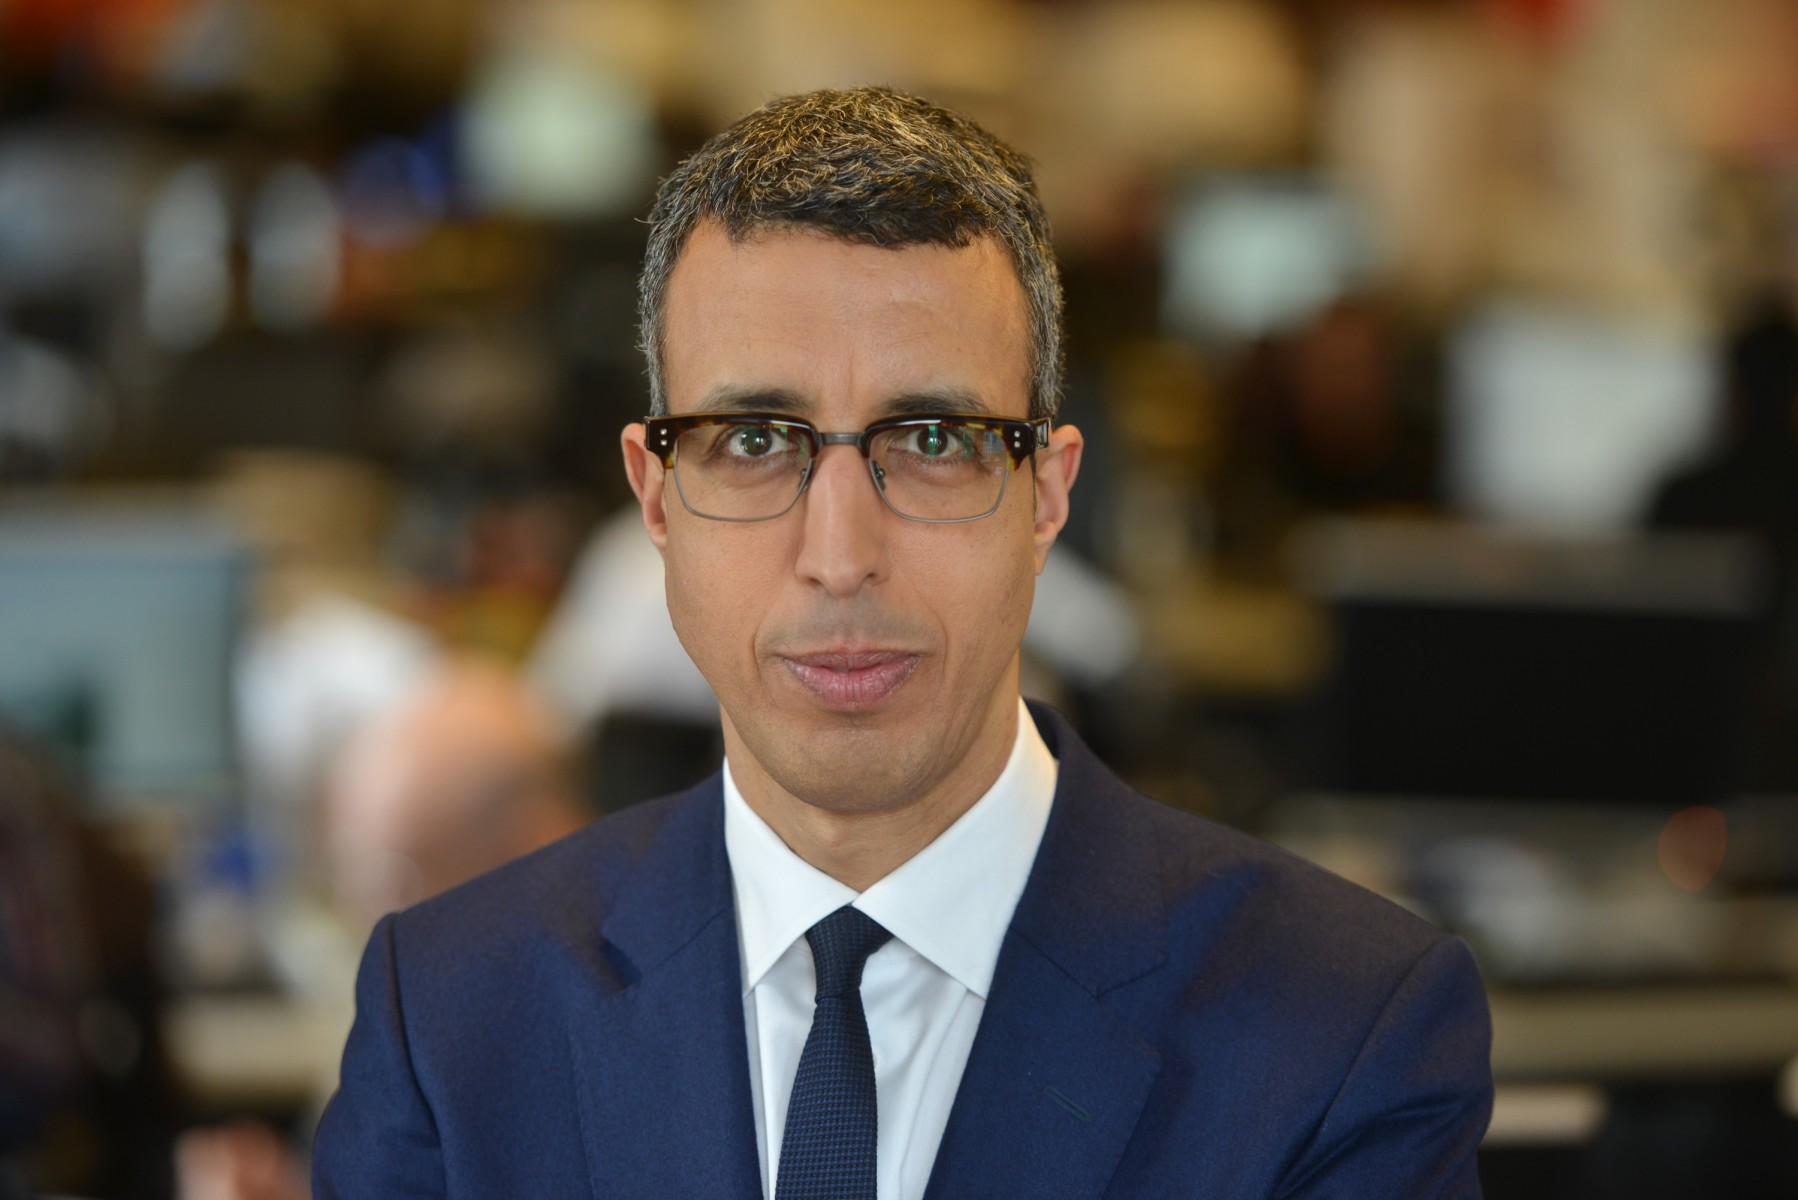 Kamal Ahmed, Editorial Director of BBC News